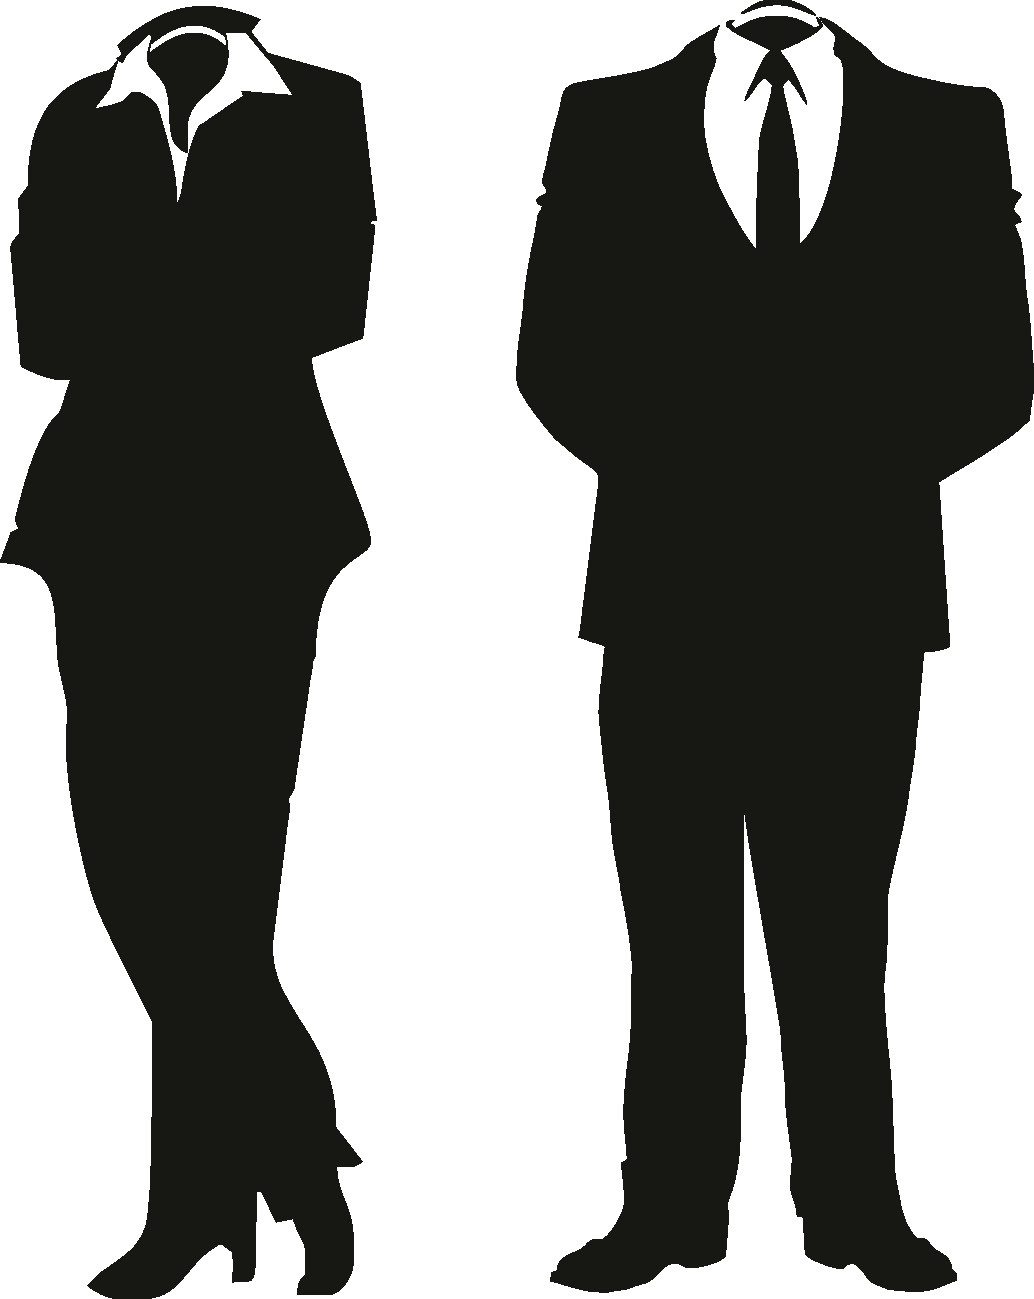 1034x1299 Business Person Silhouette Clipart Panda Free Images Outstanding